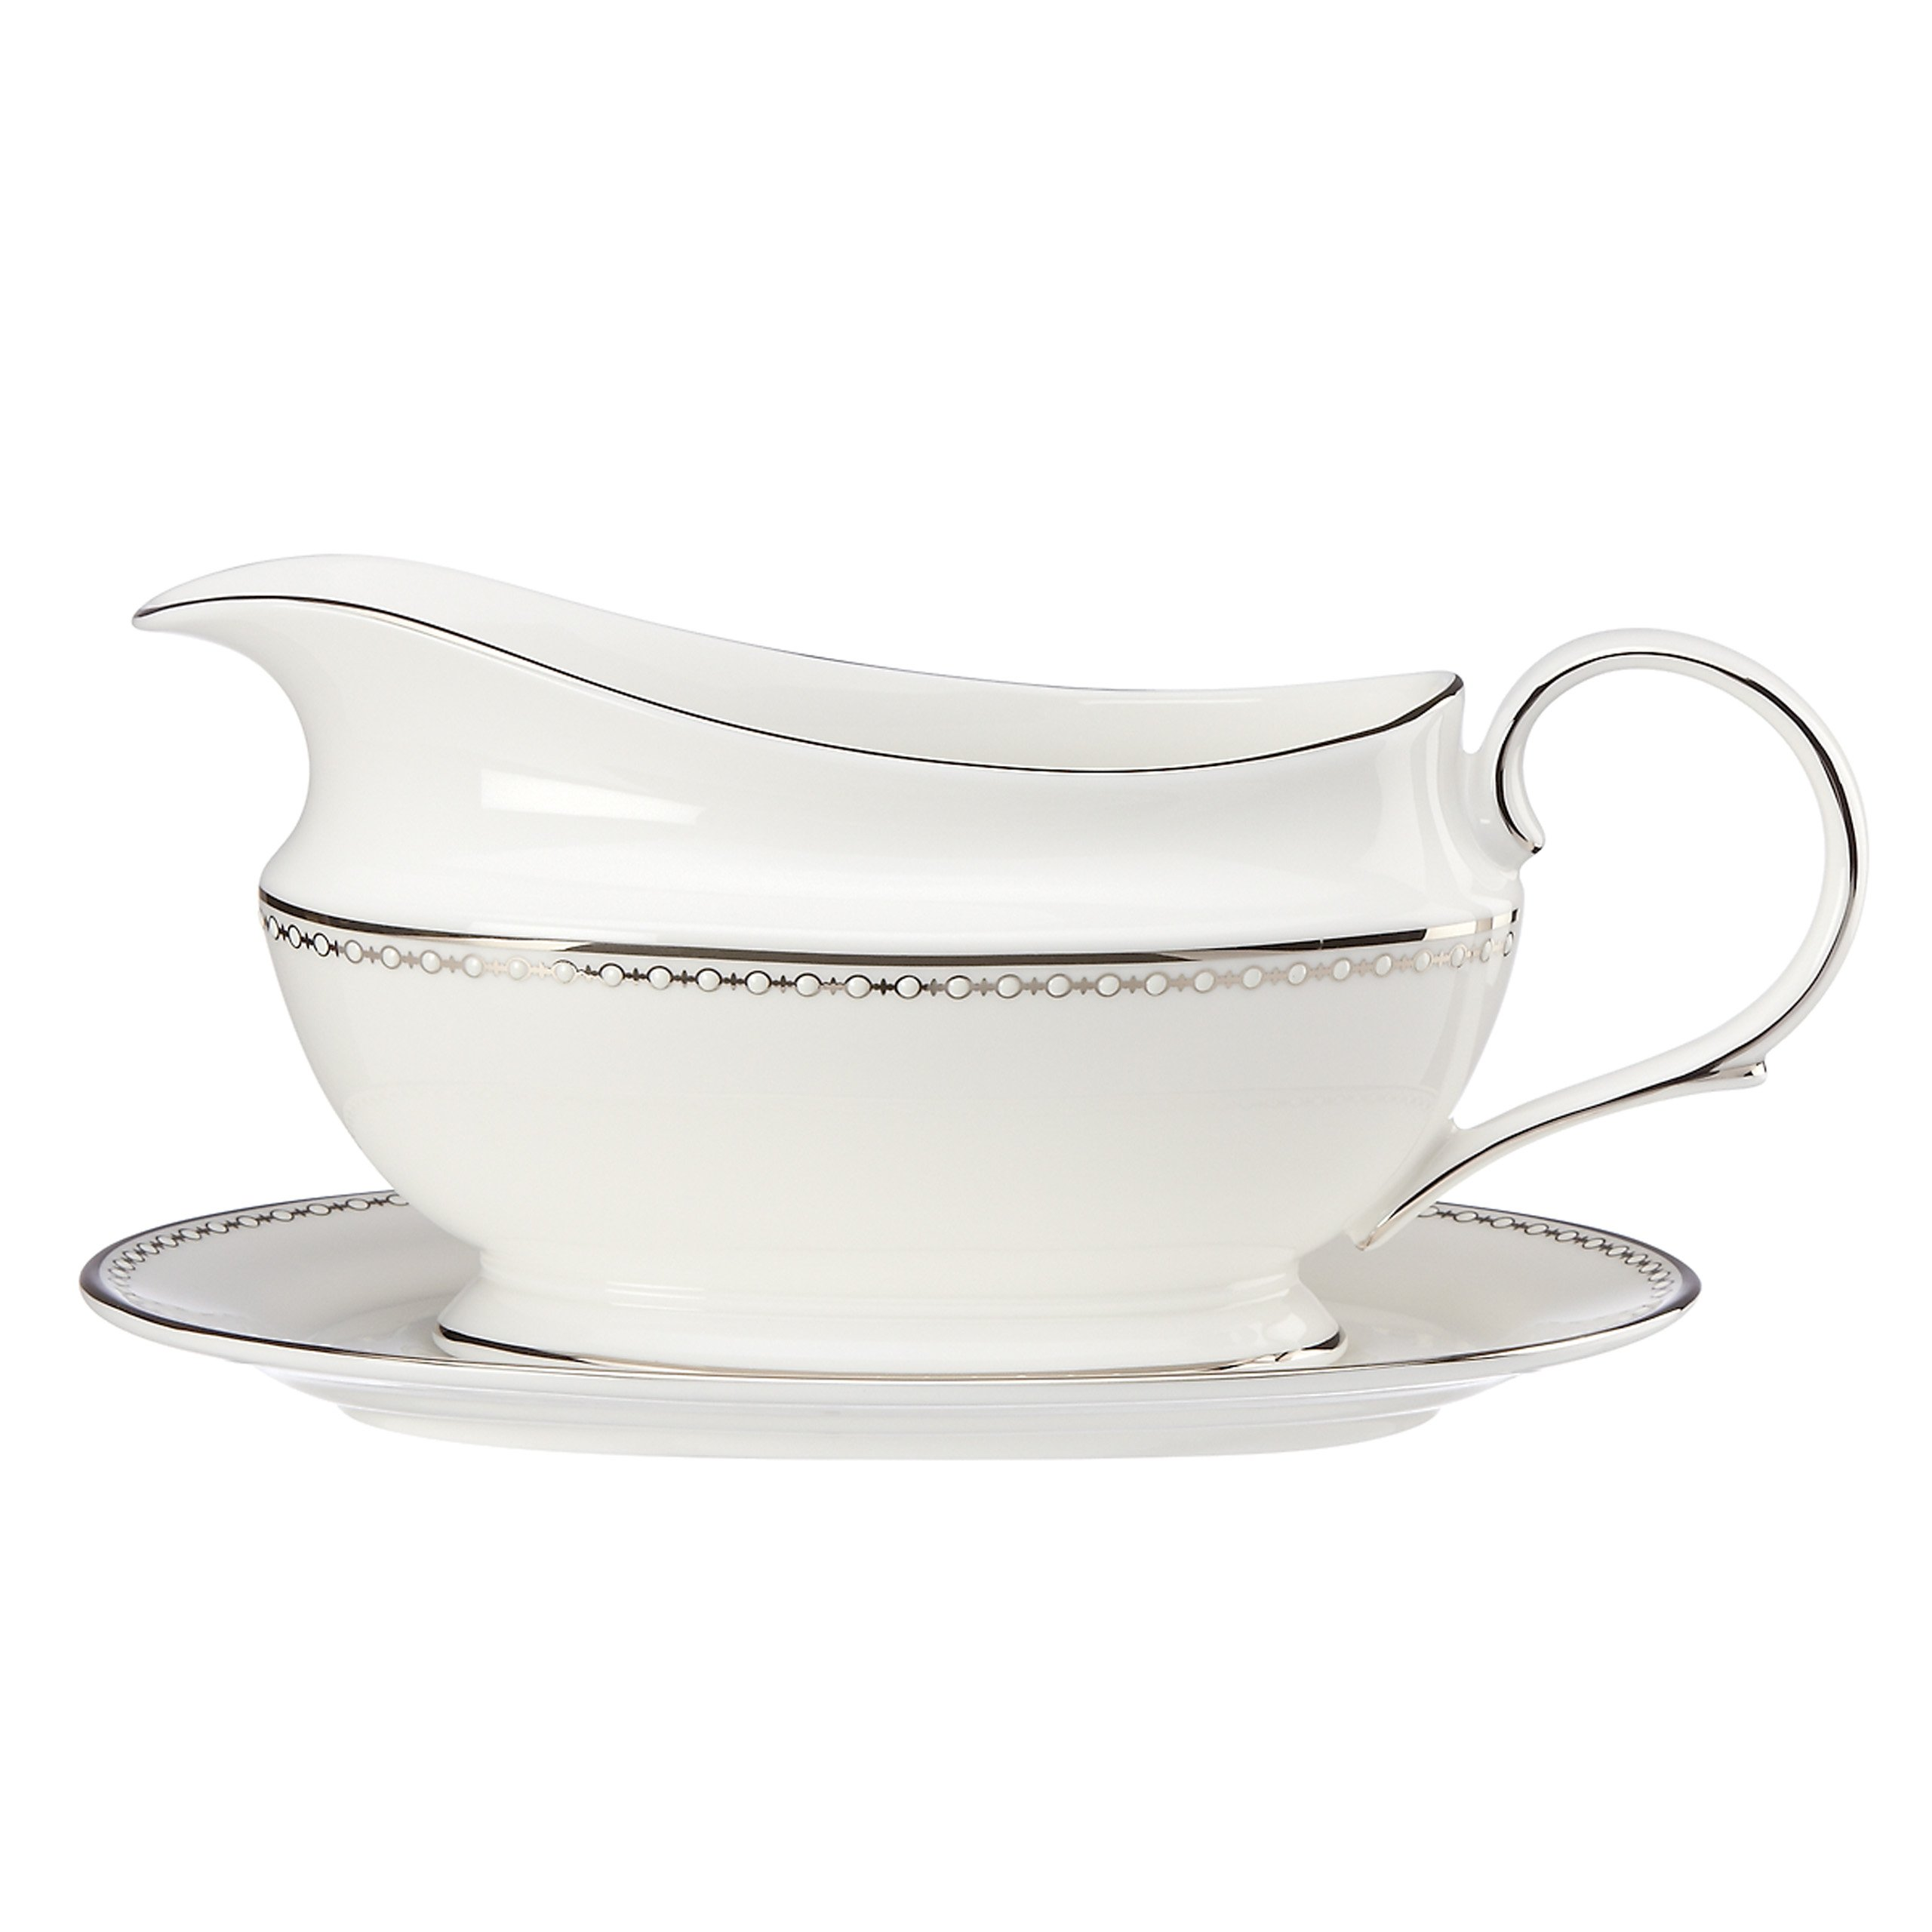 Lenox Pearl Platinum Sauce Boat and Stand, White by Lenox